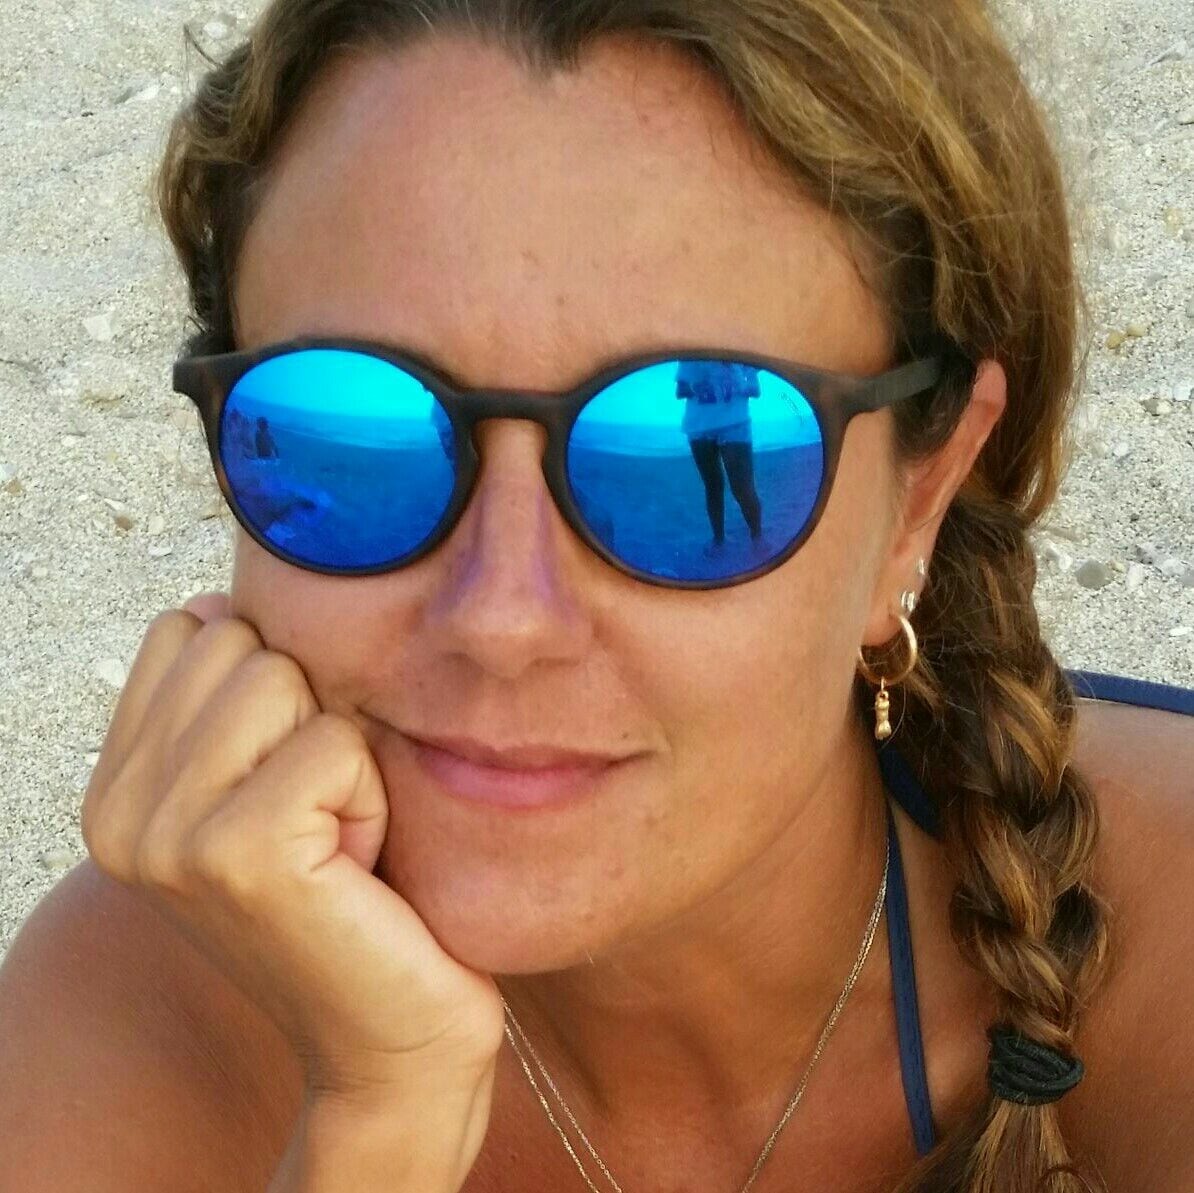 Federica from Roma